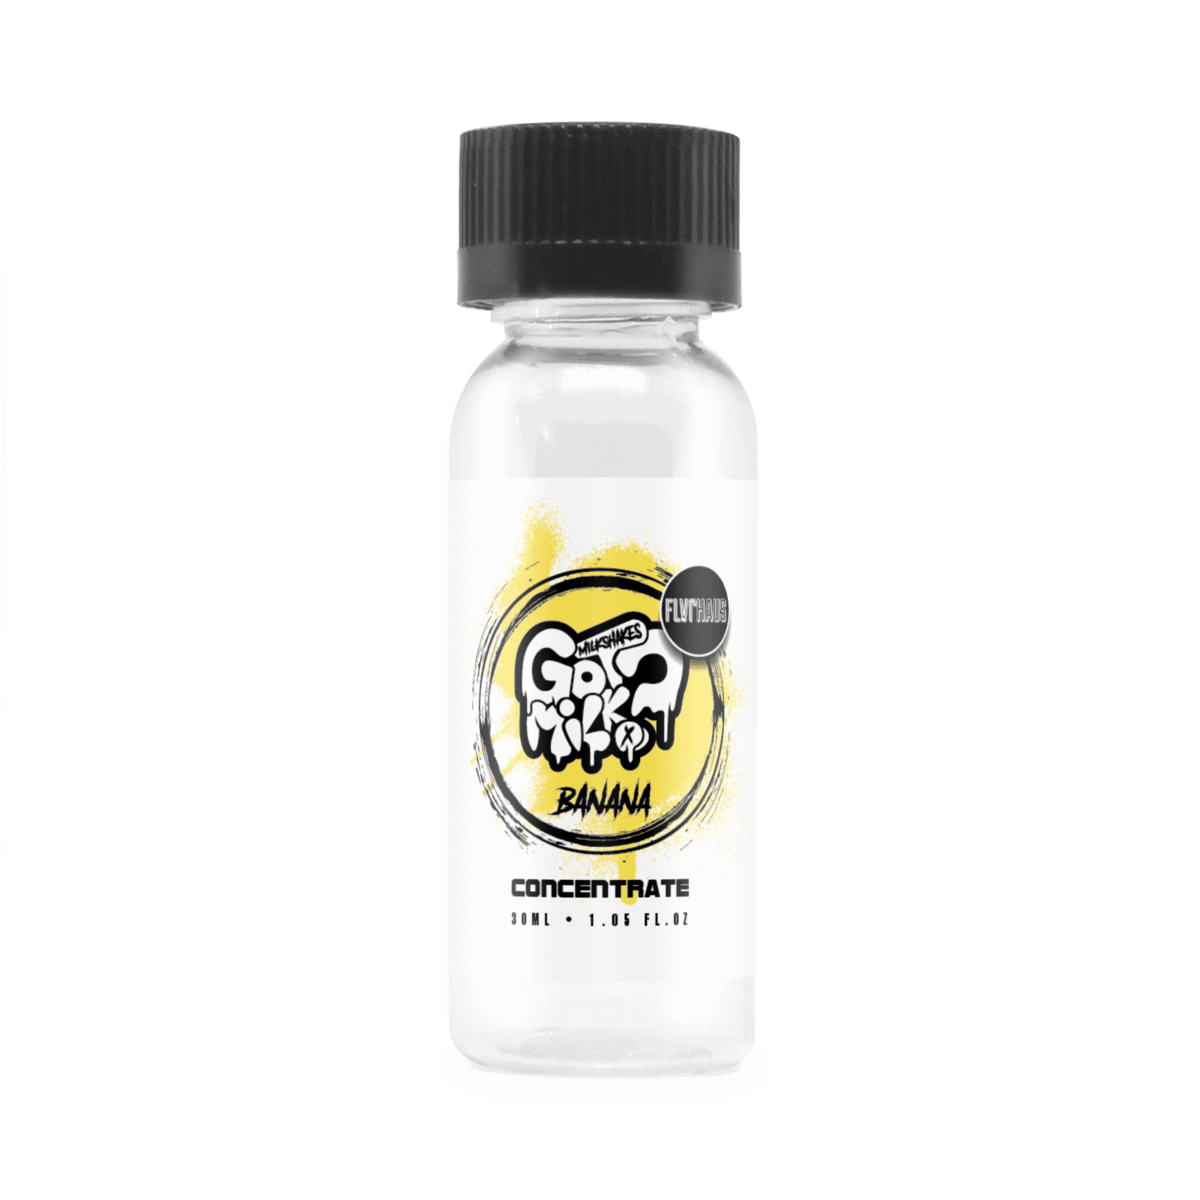 Banana Flavour Concentrate by Got Milk?